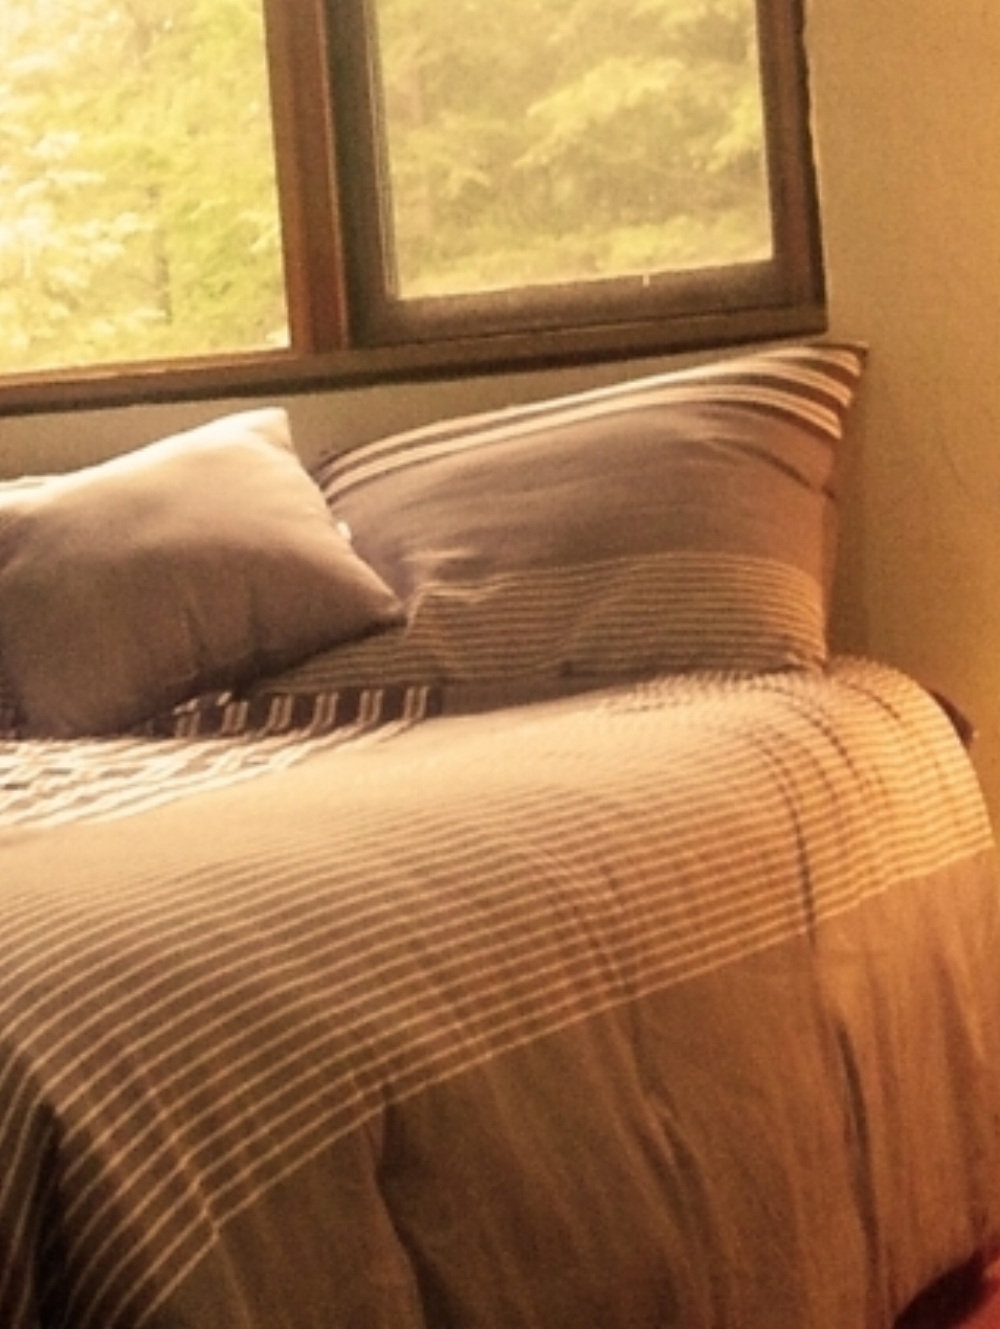 PACKAGE 2 - SHARED ROOM W/ SHARED BATH  Features: 3 Gourmet Meals per day, Activities, Shared Bath, Forest Views, Twin Size Beds              PKG 2 $1899.00 CDN/ Per Person